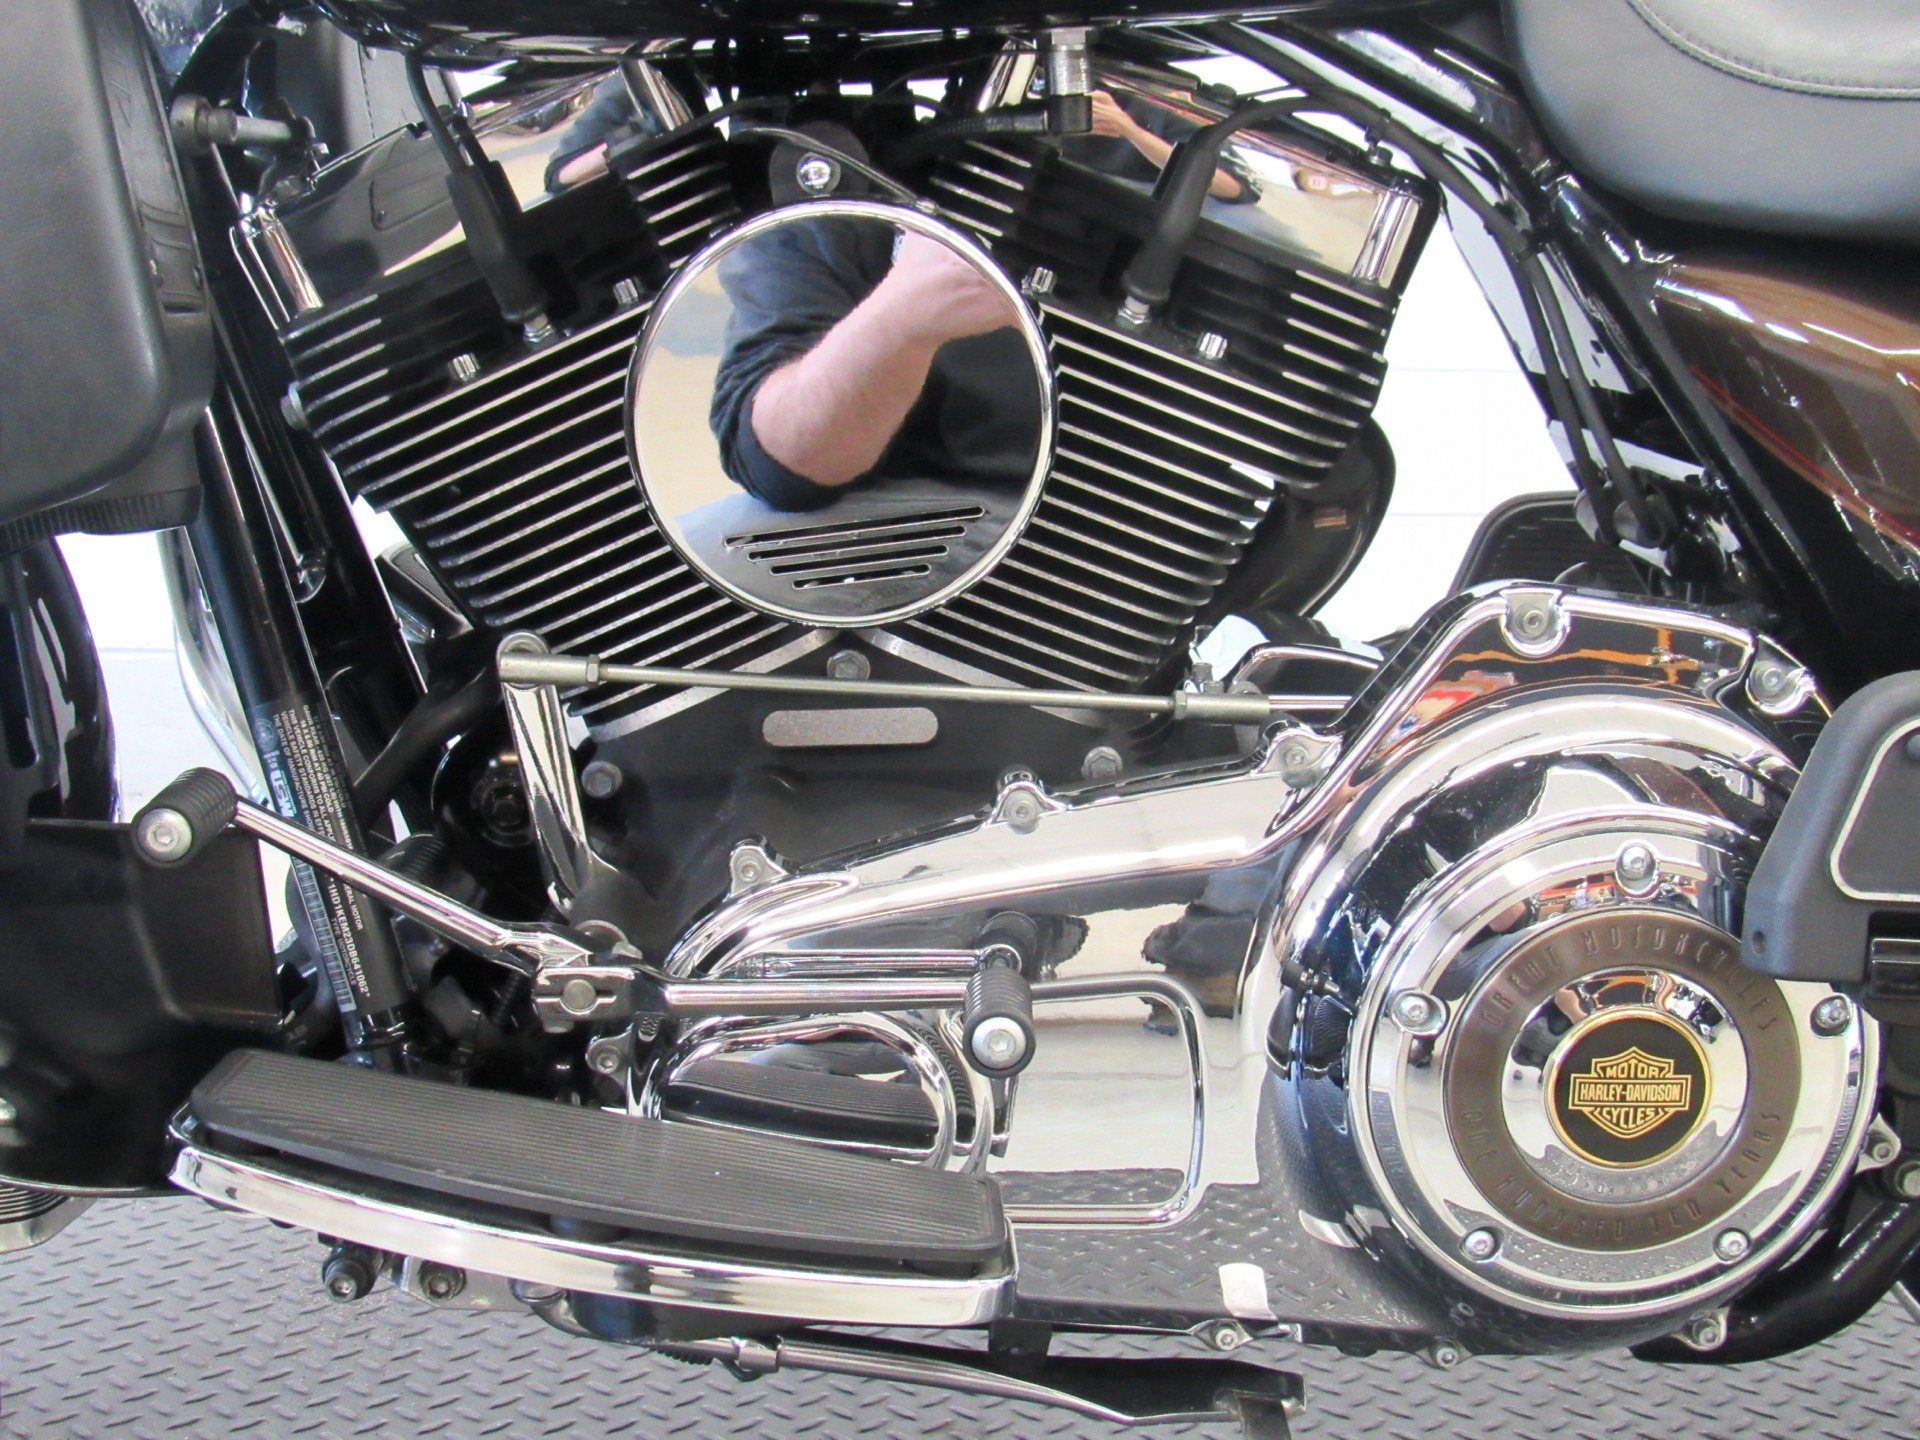 2013 Harley-Davidson Electra Glide® Ultra Limited 110th Anniversary Edition in Fredericksburg, Virginia - Photo 19